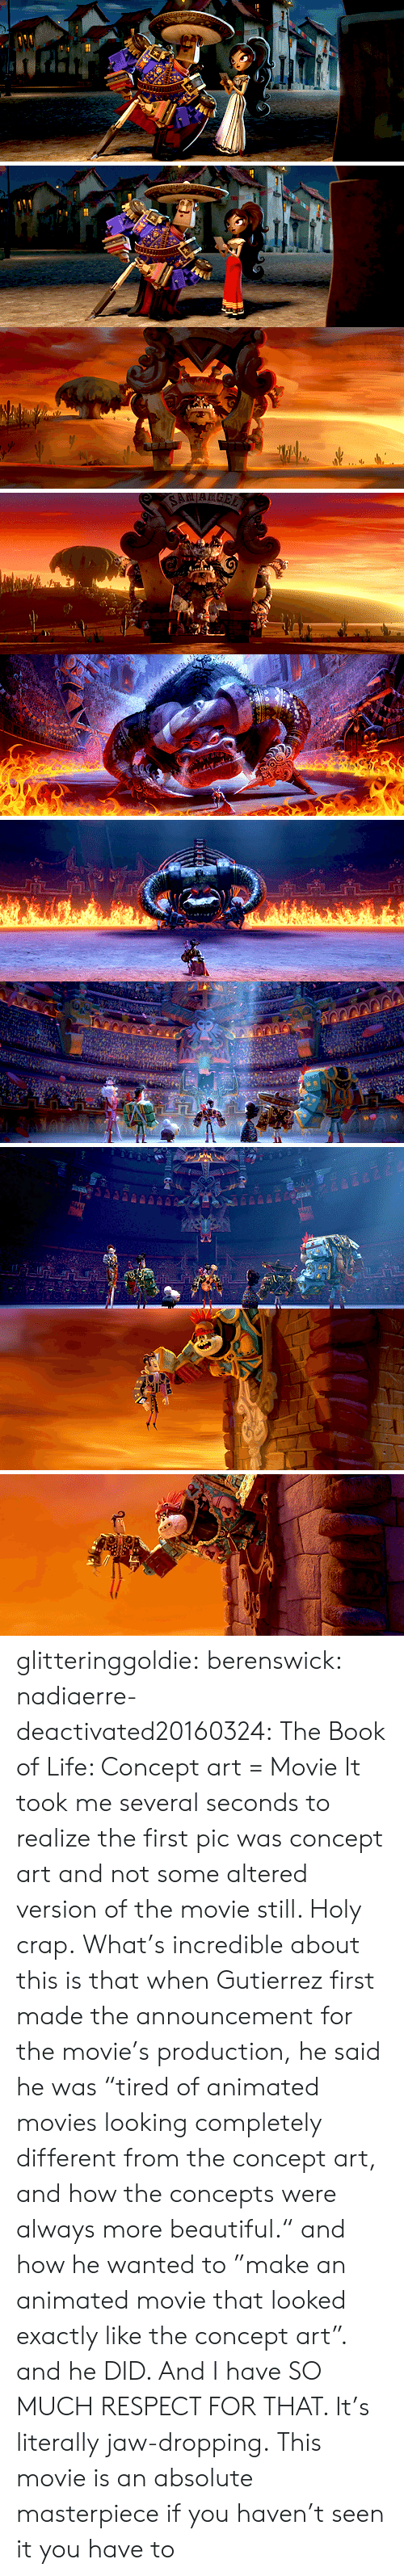 """Animated Movies: SANARGEL glitteringgoldie: berenswick:  nadiaerre-deactivated20160324:  The Book of Life: Concept art = Movie  It took me several seconds to realize the first pic was concept art and not some altered version of the movie still. Holy crap.  What's incredible about this is that when Gutierrez first made the announcement for the movie's production, he said he was """"tired of animated movies looking completely different from the concept art, and how the concepts were always more beautiful."""" and how he wanted to """"make an animated movie that looked exactly like the concept art"""". and he DID. And I have SO MUCH RESPECT FOR THAT. It's literally jaw-dropping.   This movie is an absolute masterpiece if you haven't seen it you have to"""